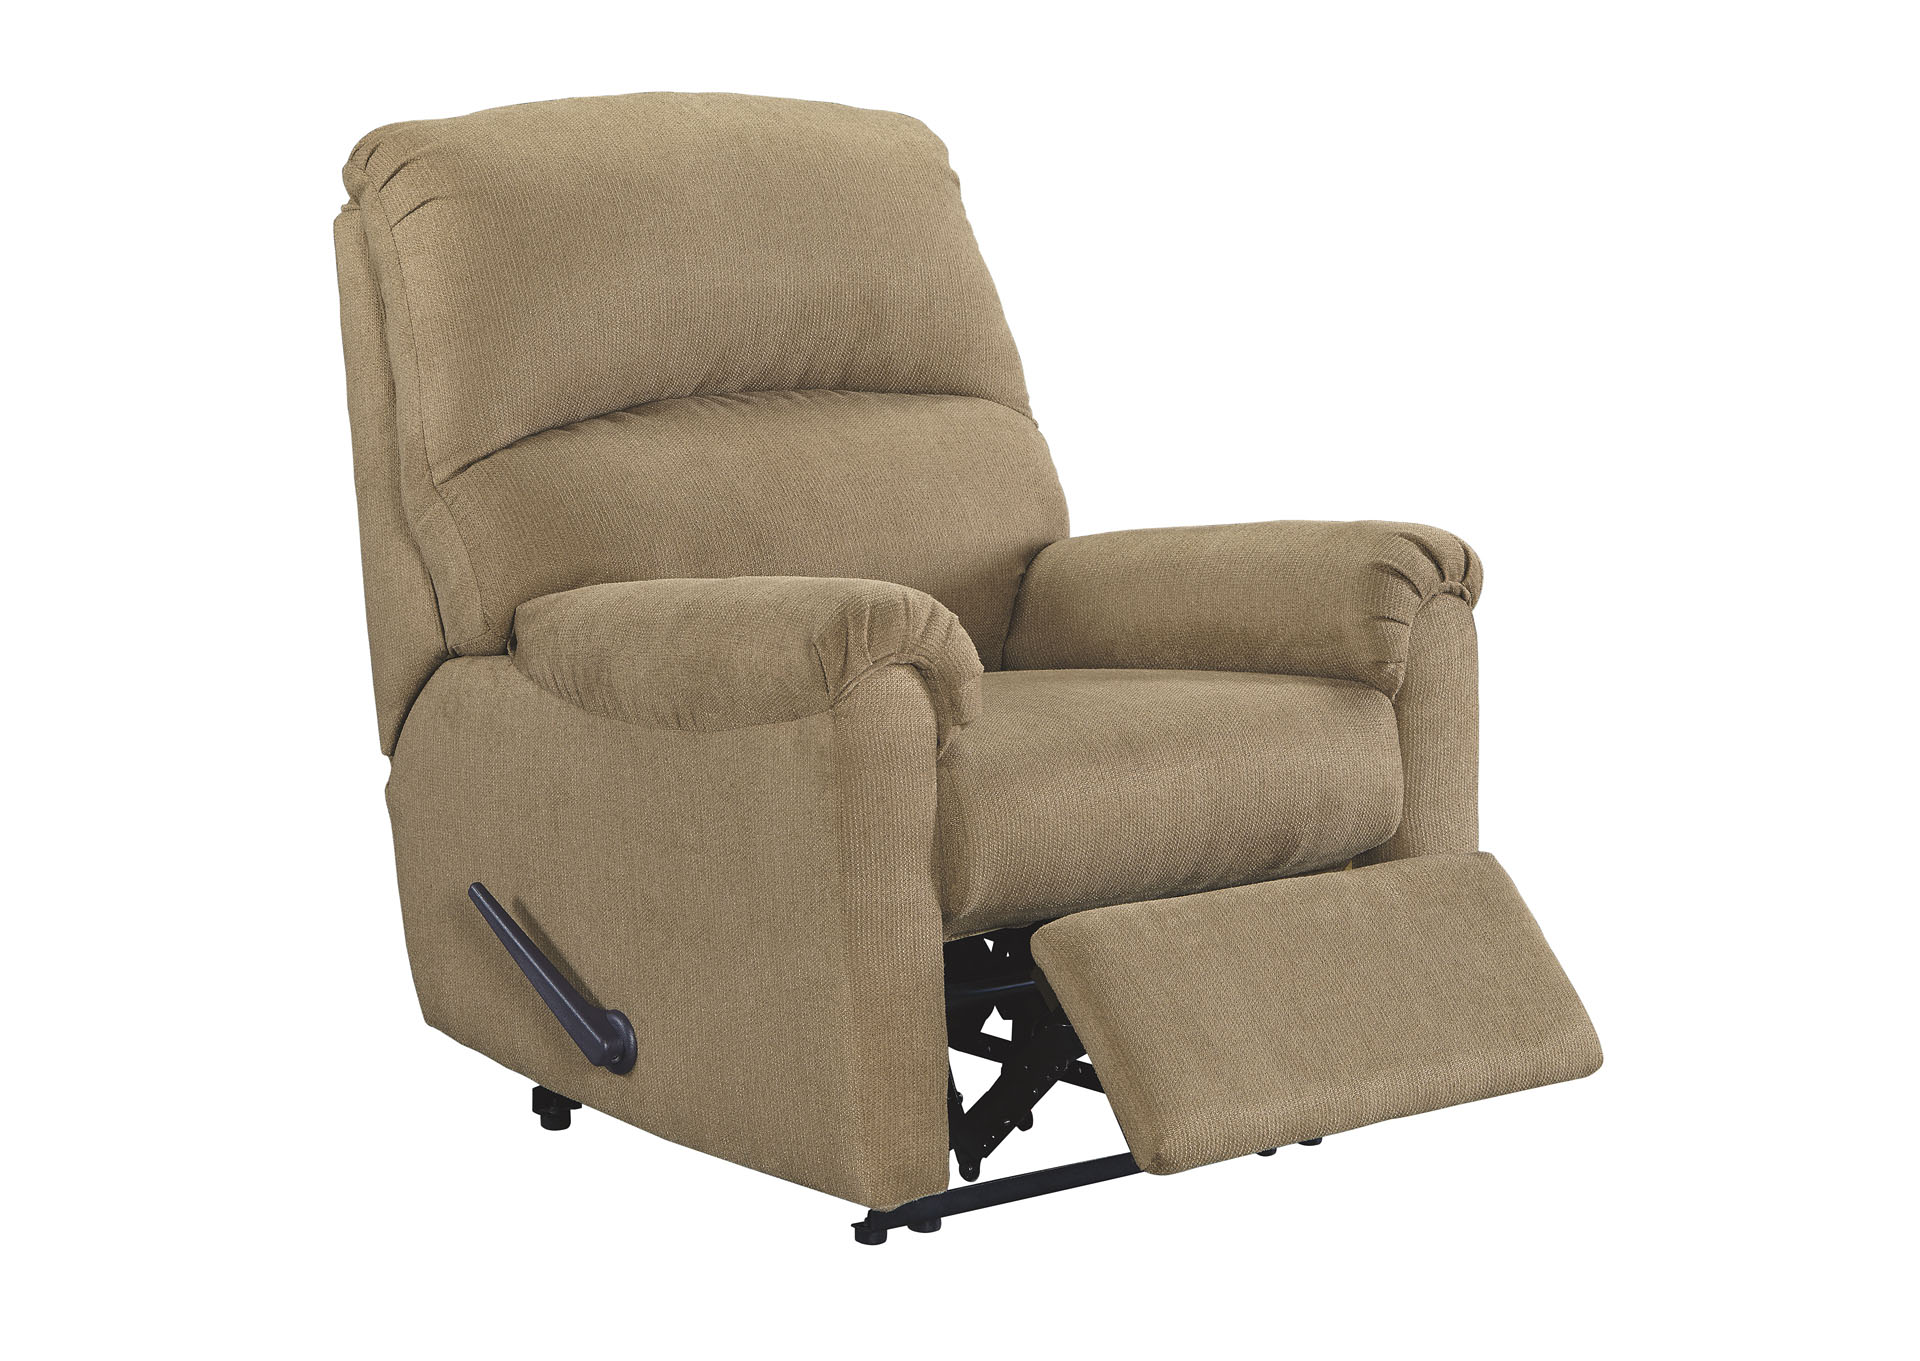 Otwell Cocoa Rocker Recliner,Signature Design by Ashley